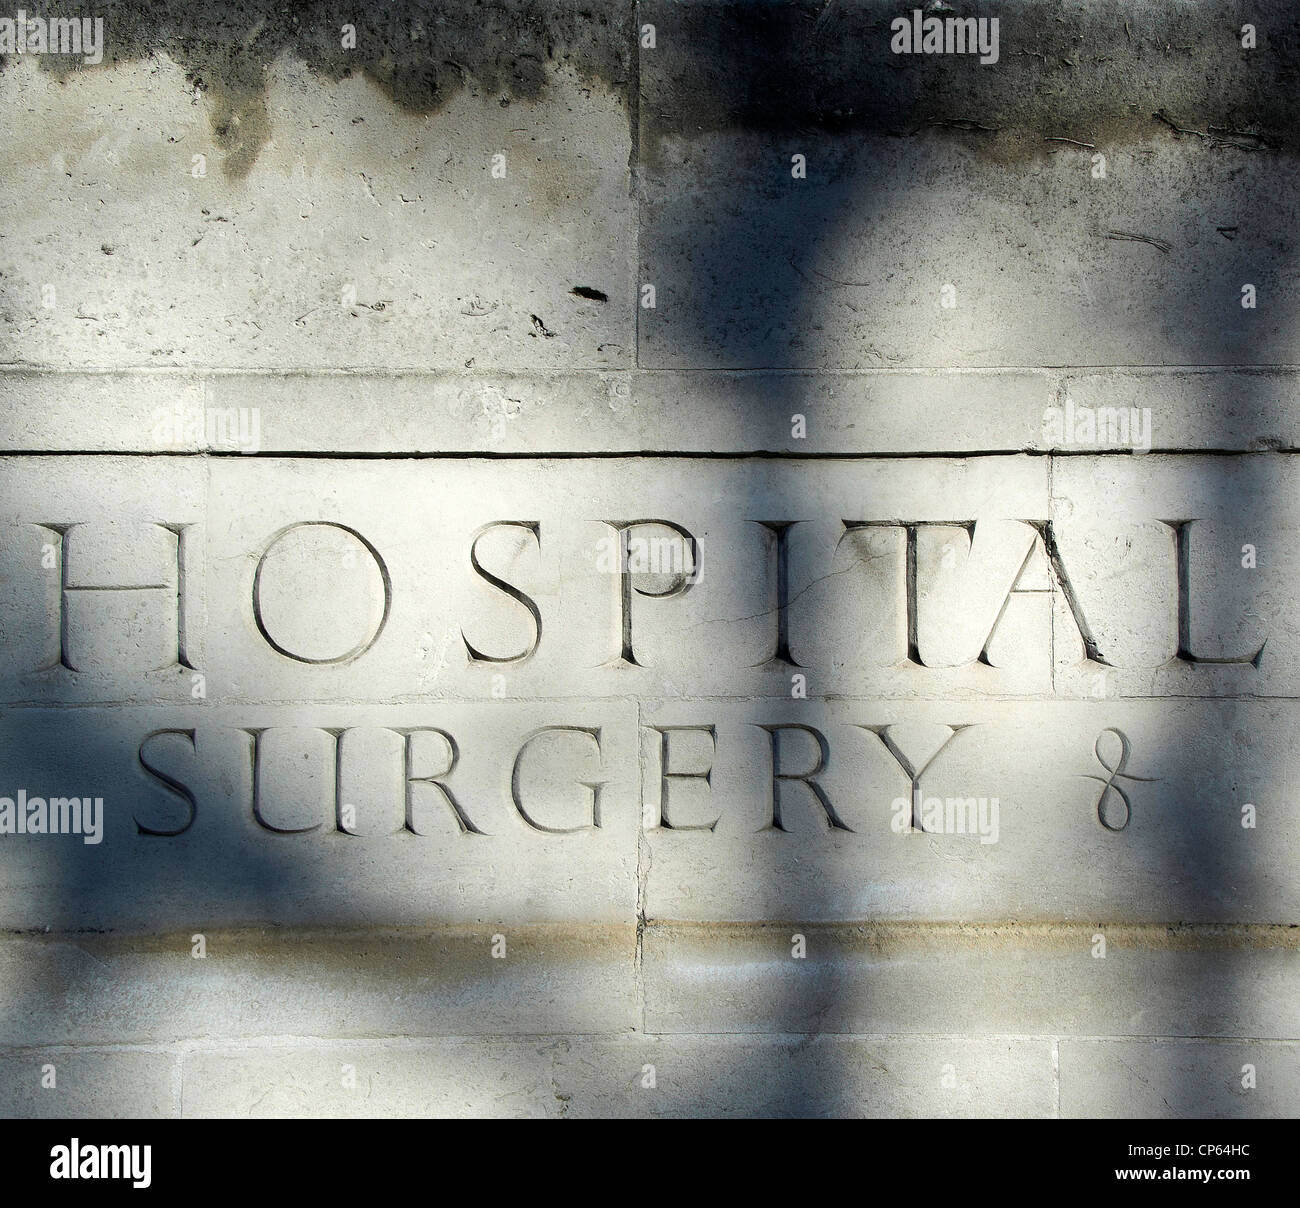 Hospital Sign carved in Stone, London - Stock Image